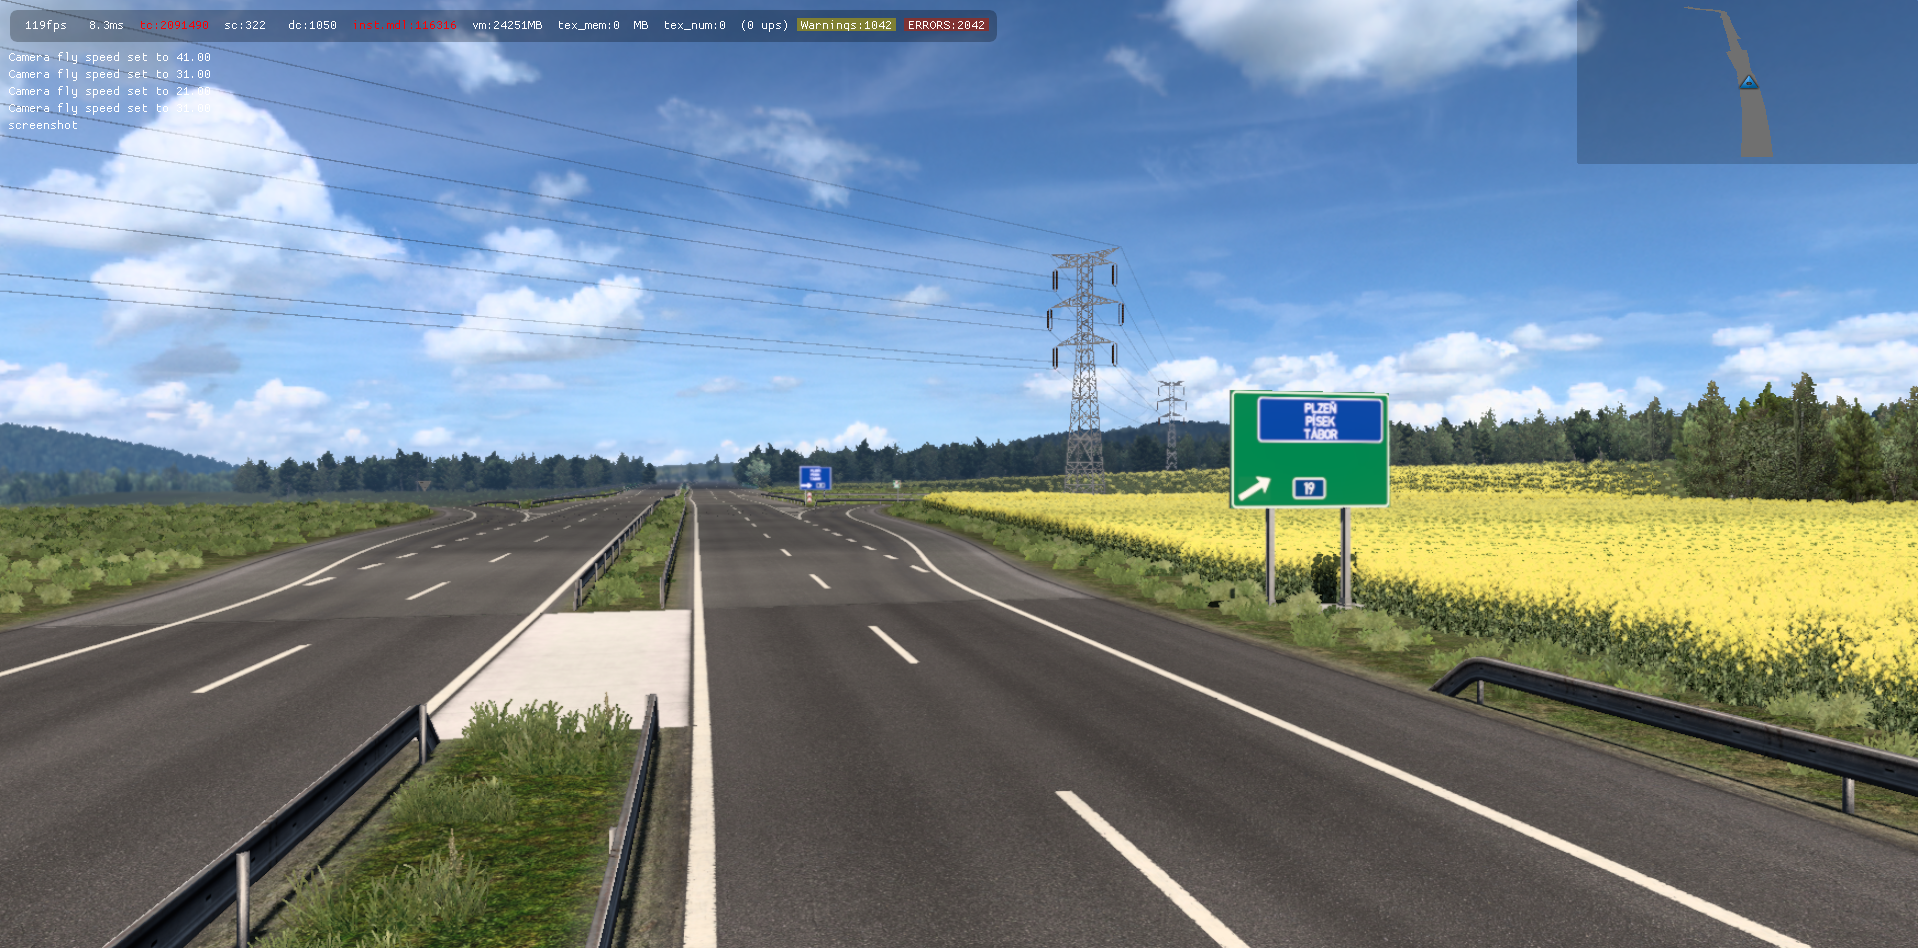 ets2_20210810_220004_00.png